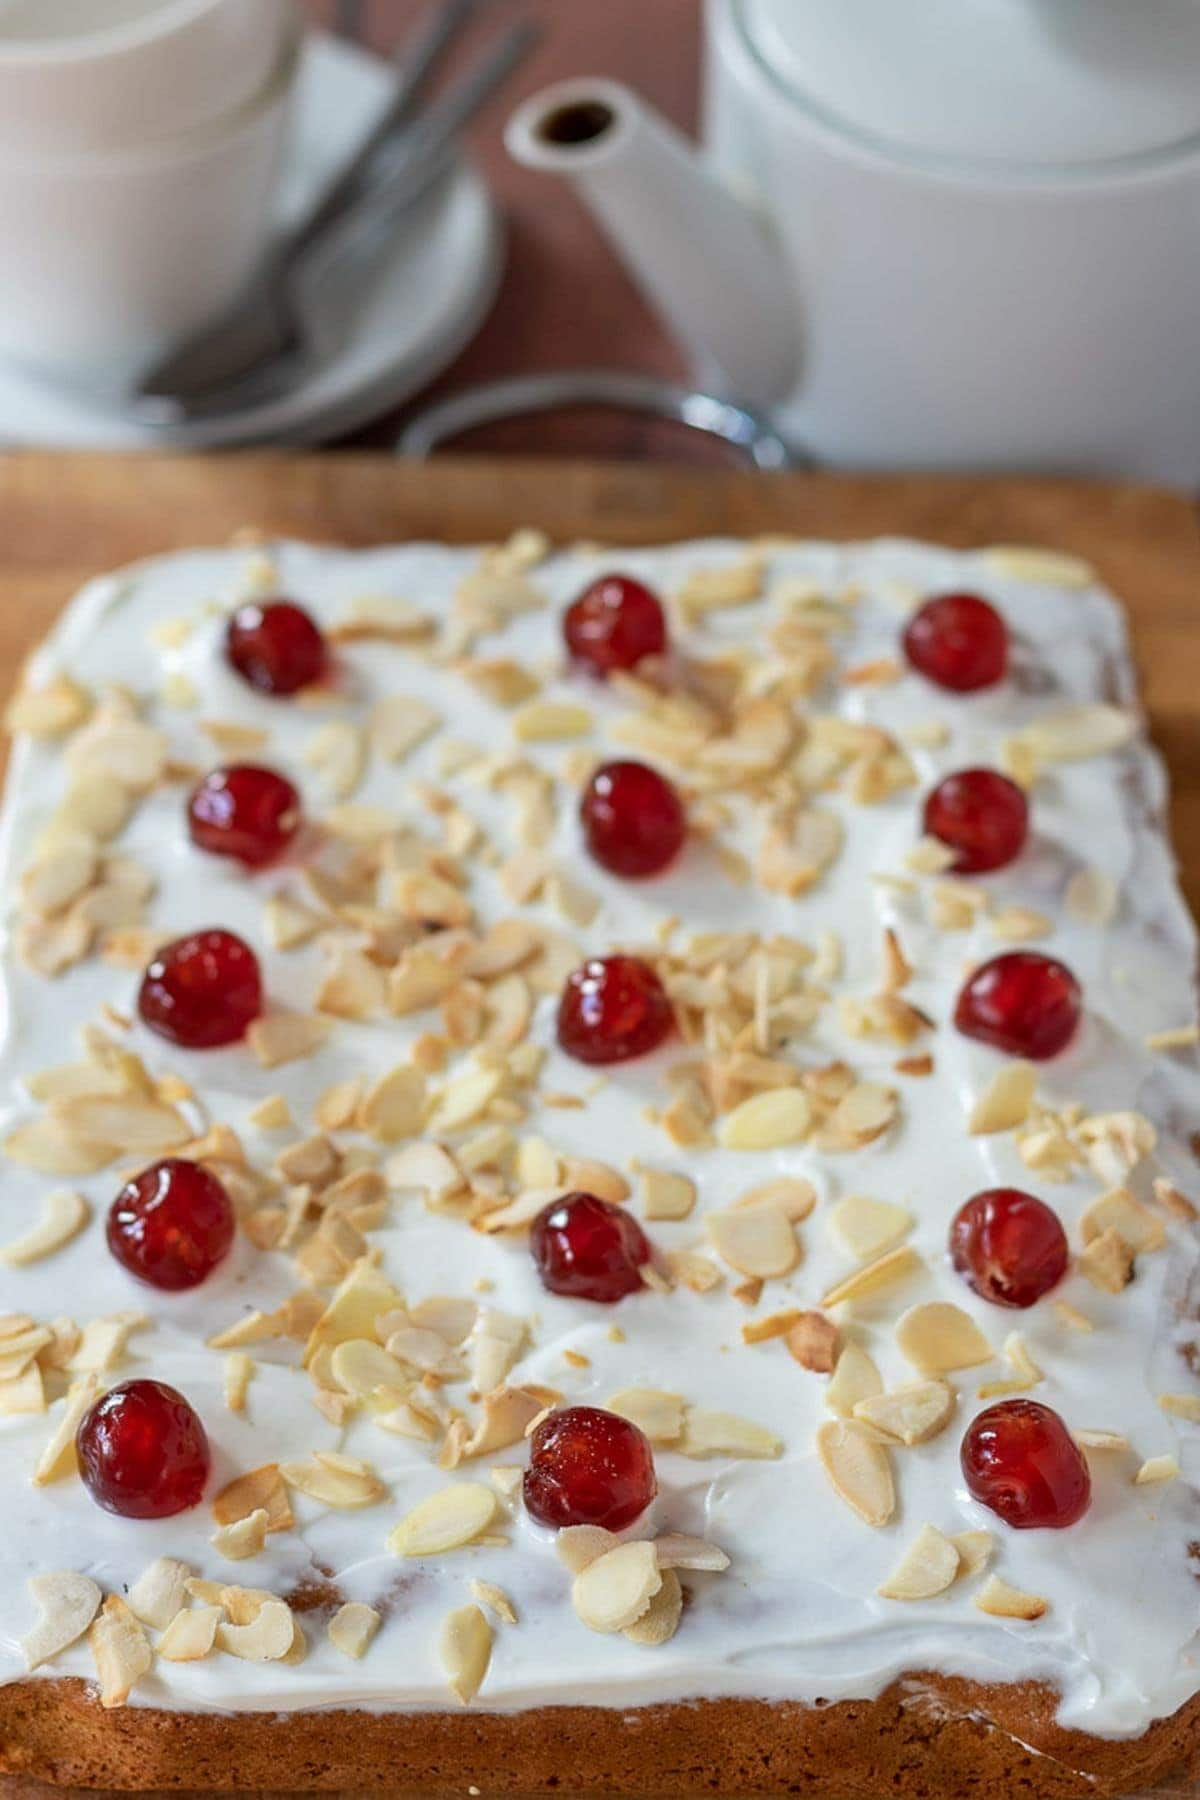 Cherry Bakewell removed from baking tin, decorated with glace cherries and sitting on a chopping board ready to be cut into squares. A pot of tea and tea cup in the background.